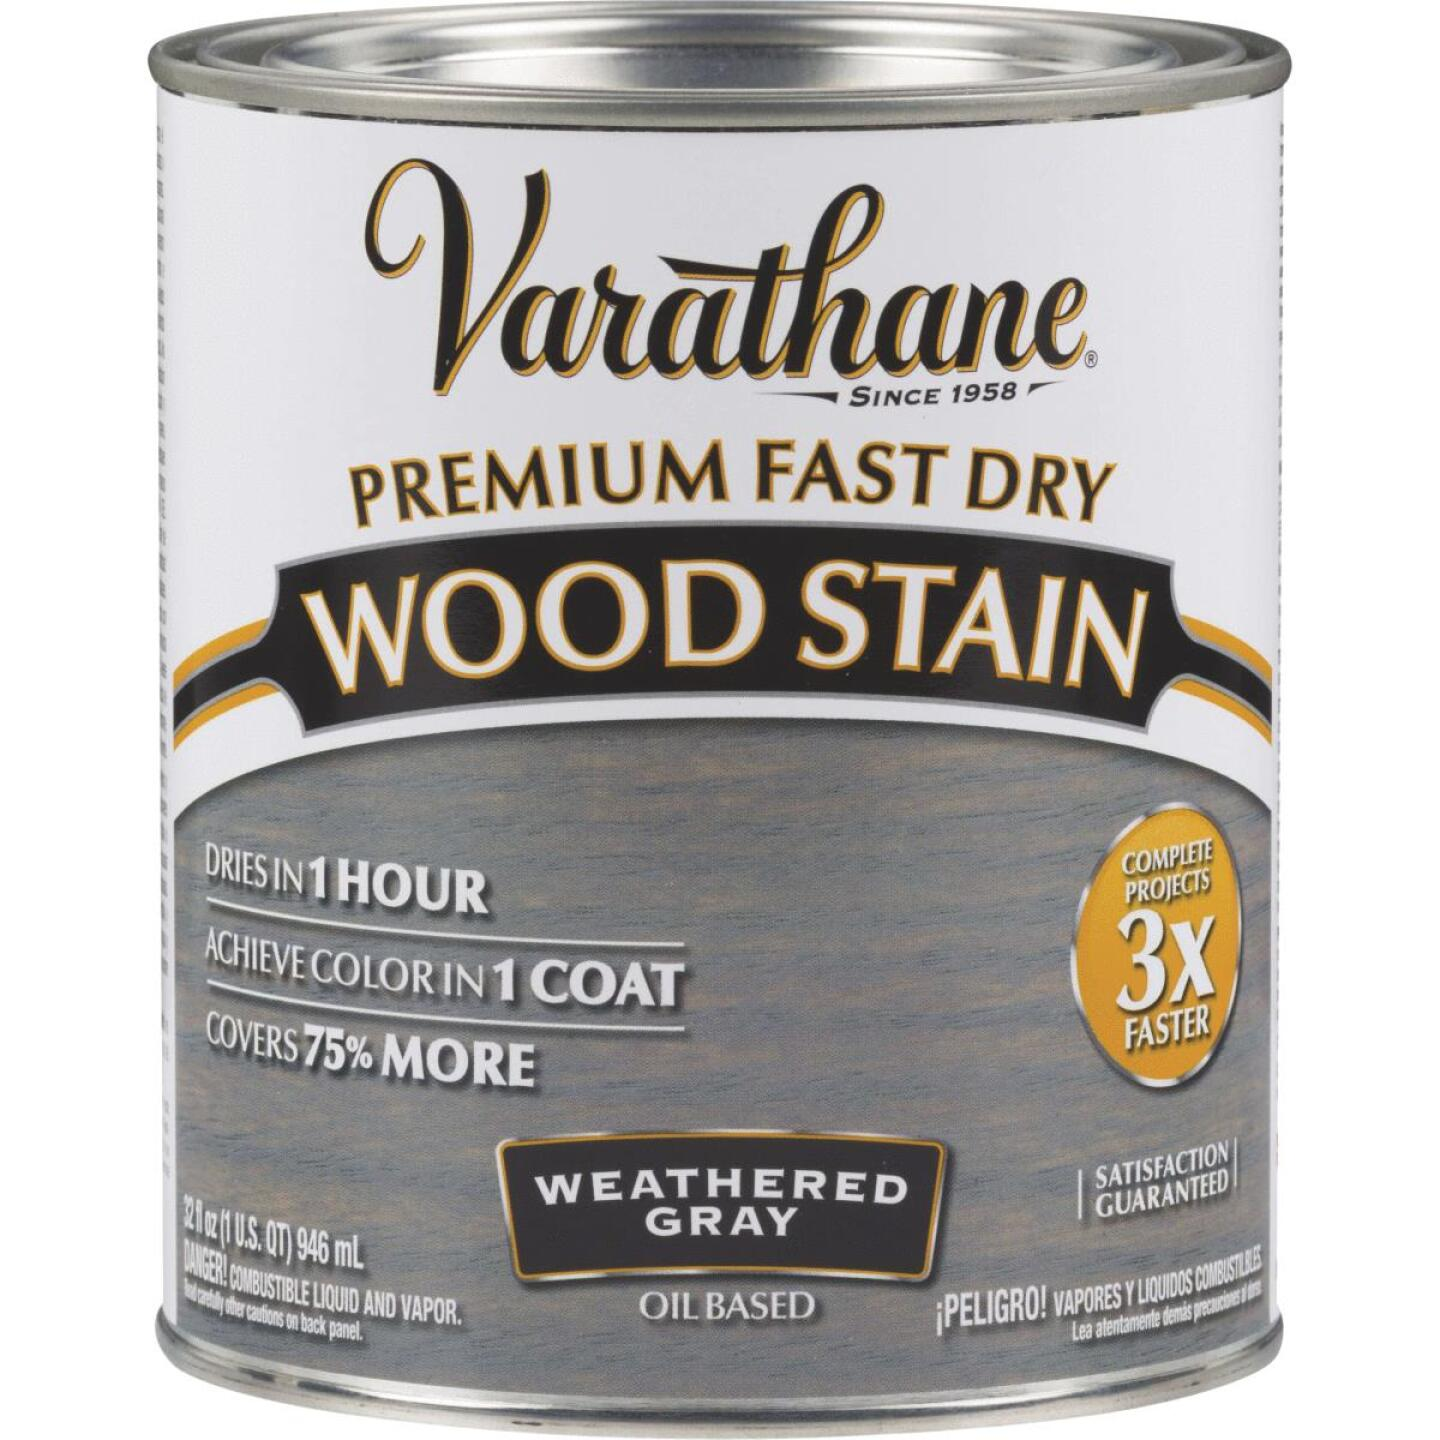 Varathane Fast Dry Weathered Gray Urethane Modified Alkyd Interior Wood Stain, 1 Qt. Image 1